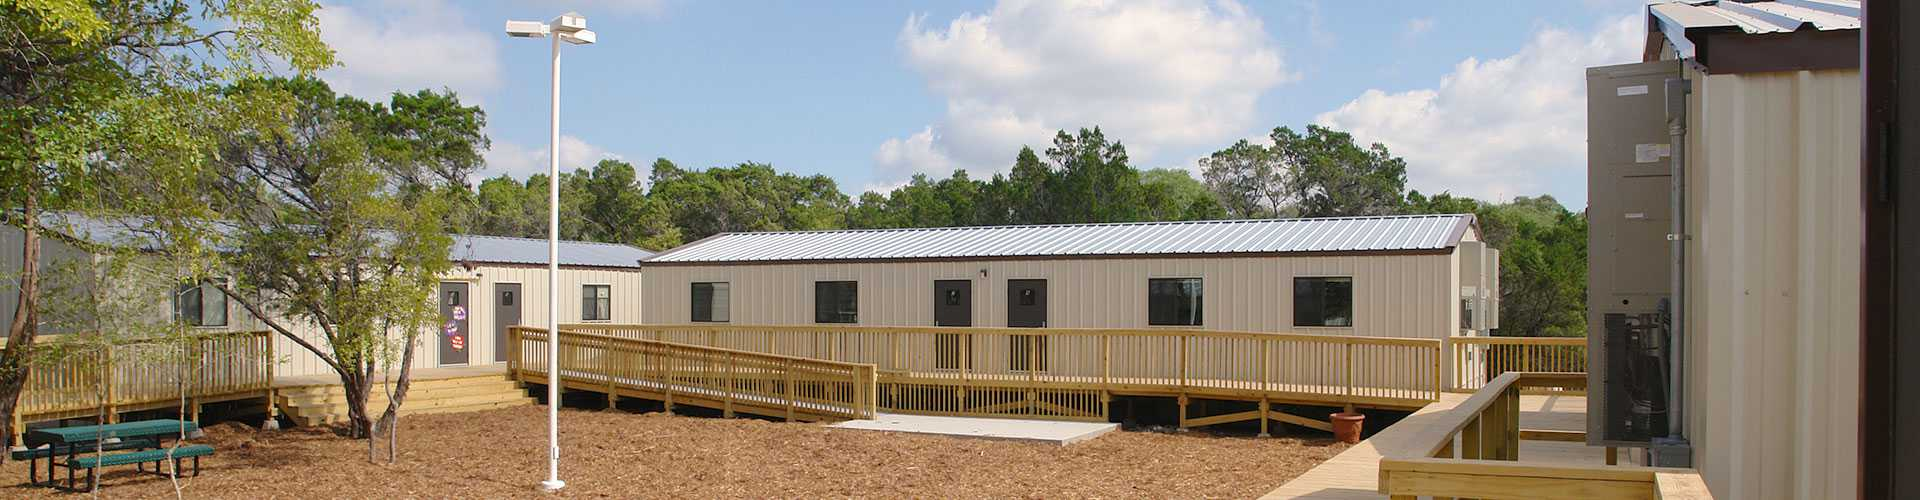 Modular Classroom Rental ~ Portable classroom buildings for rent or sale in texas